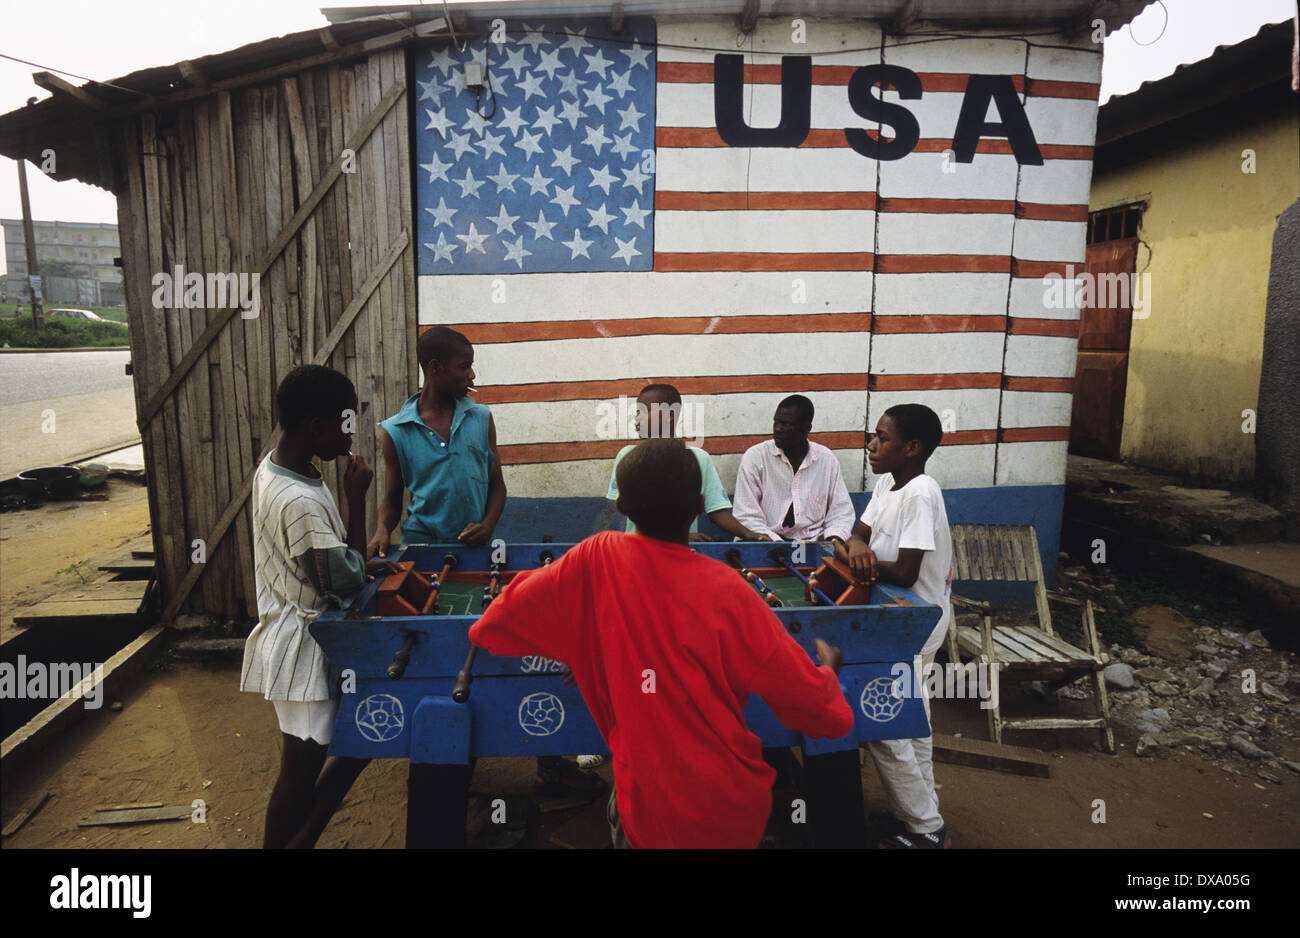 Children playing football under American flag mural, Yopougon township, across from Abidjan, Ivory Coast, Africa - Stock Image